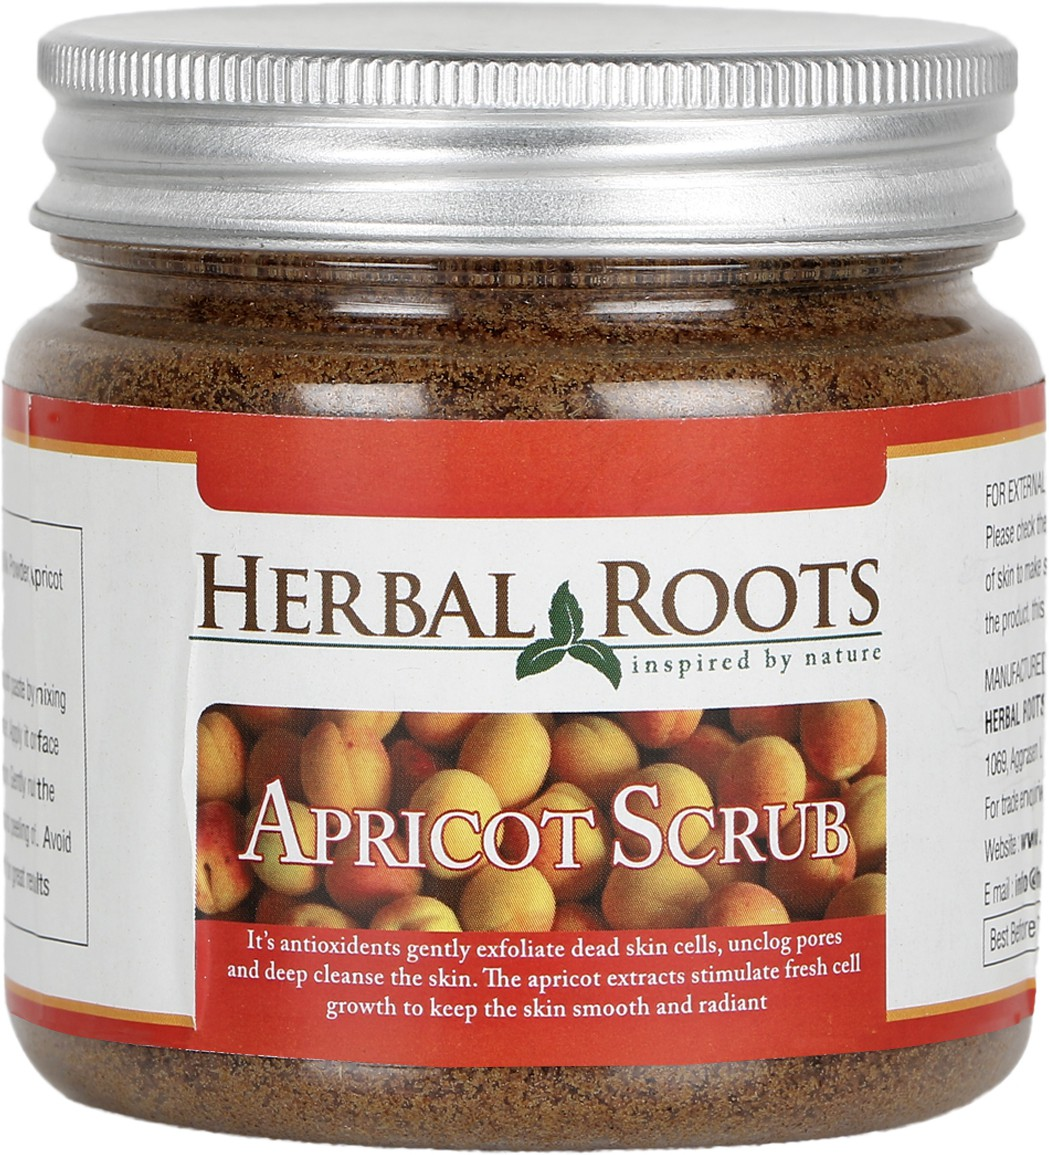 Herbal Roots Anti Blemish, Blackhead Remover And Skin Lightening Apricot Scrub For Face Treatment(100 g)